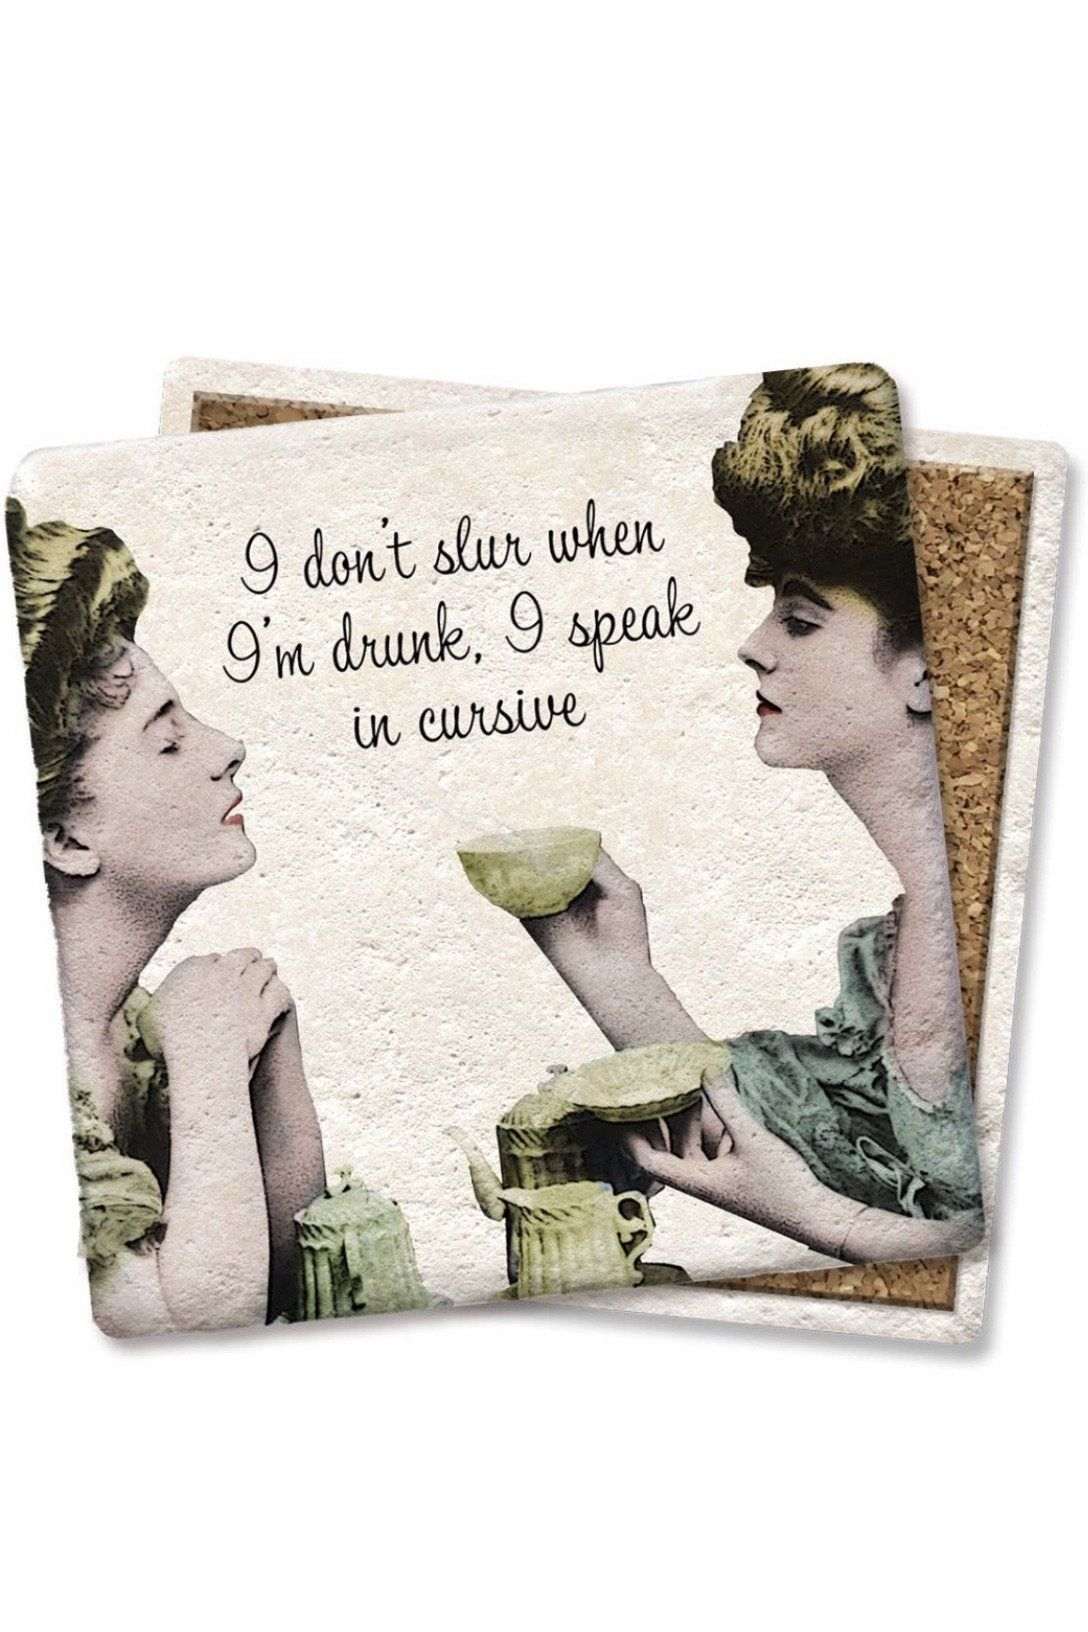 Drunk Slur Coaster